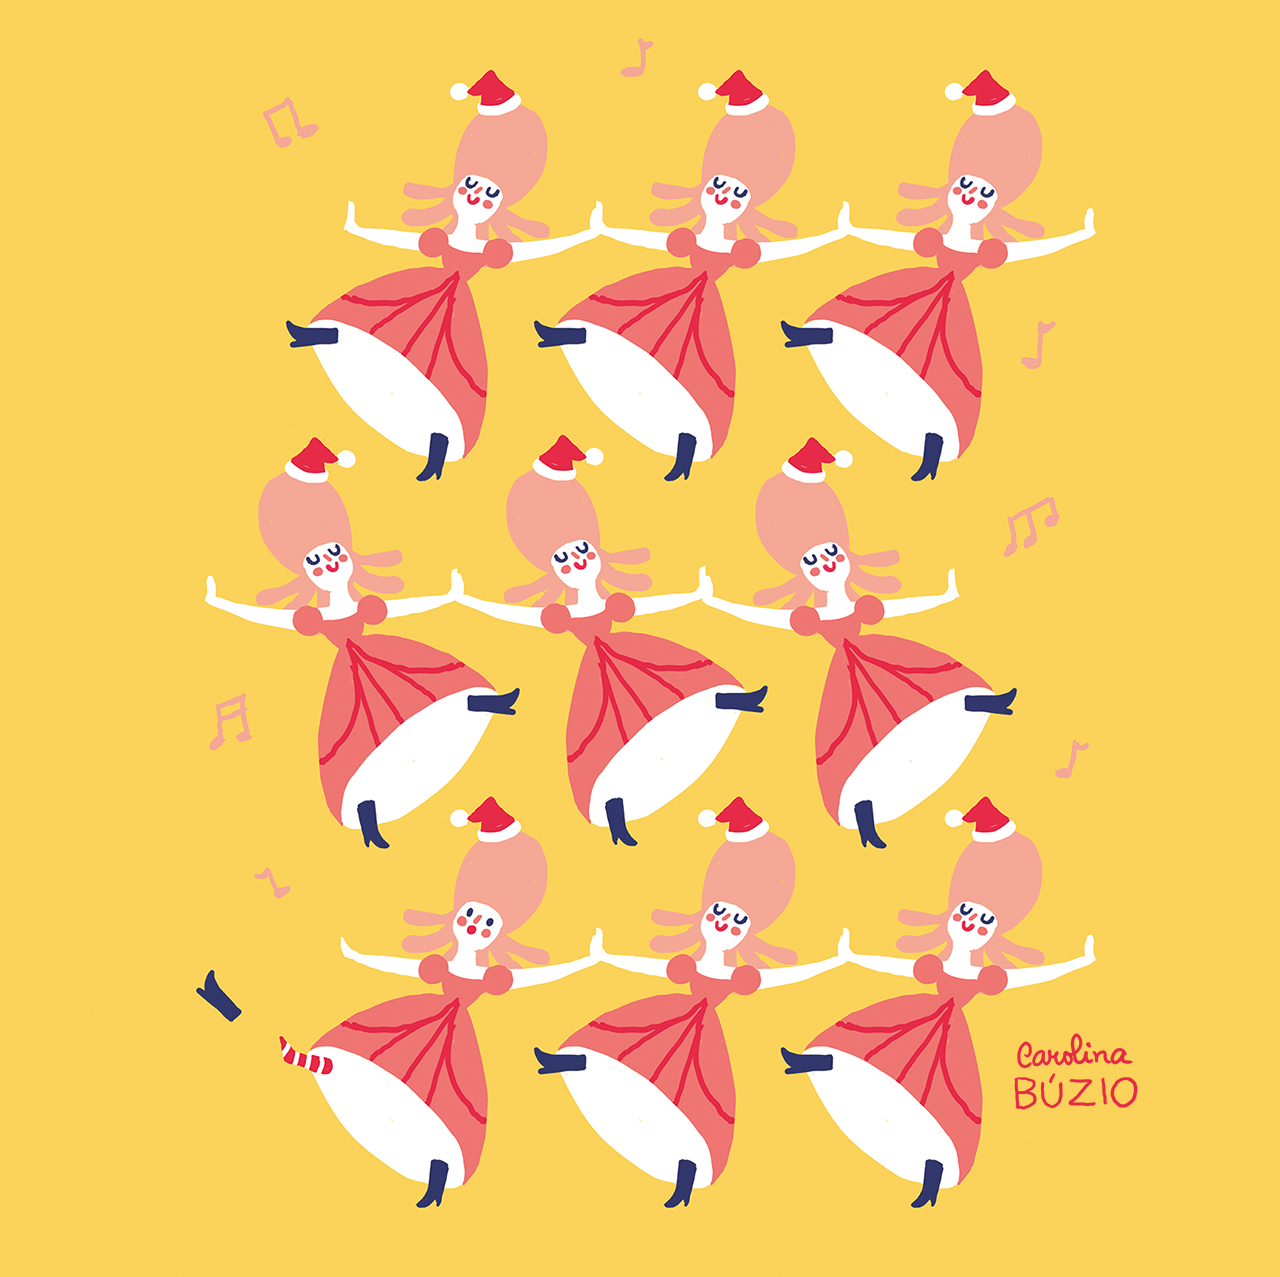 hight resolution of 9 ladies dancing and 9 days for december to start by carolina buzio